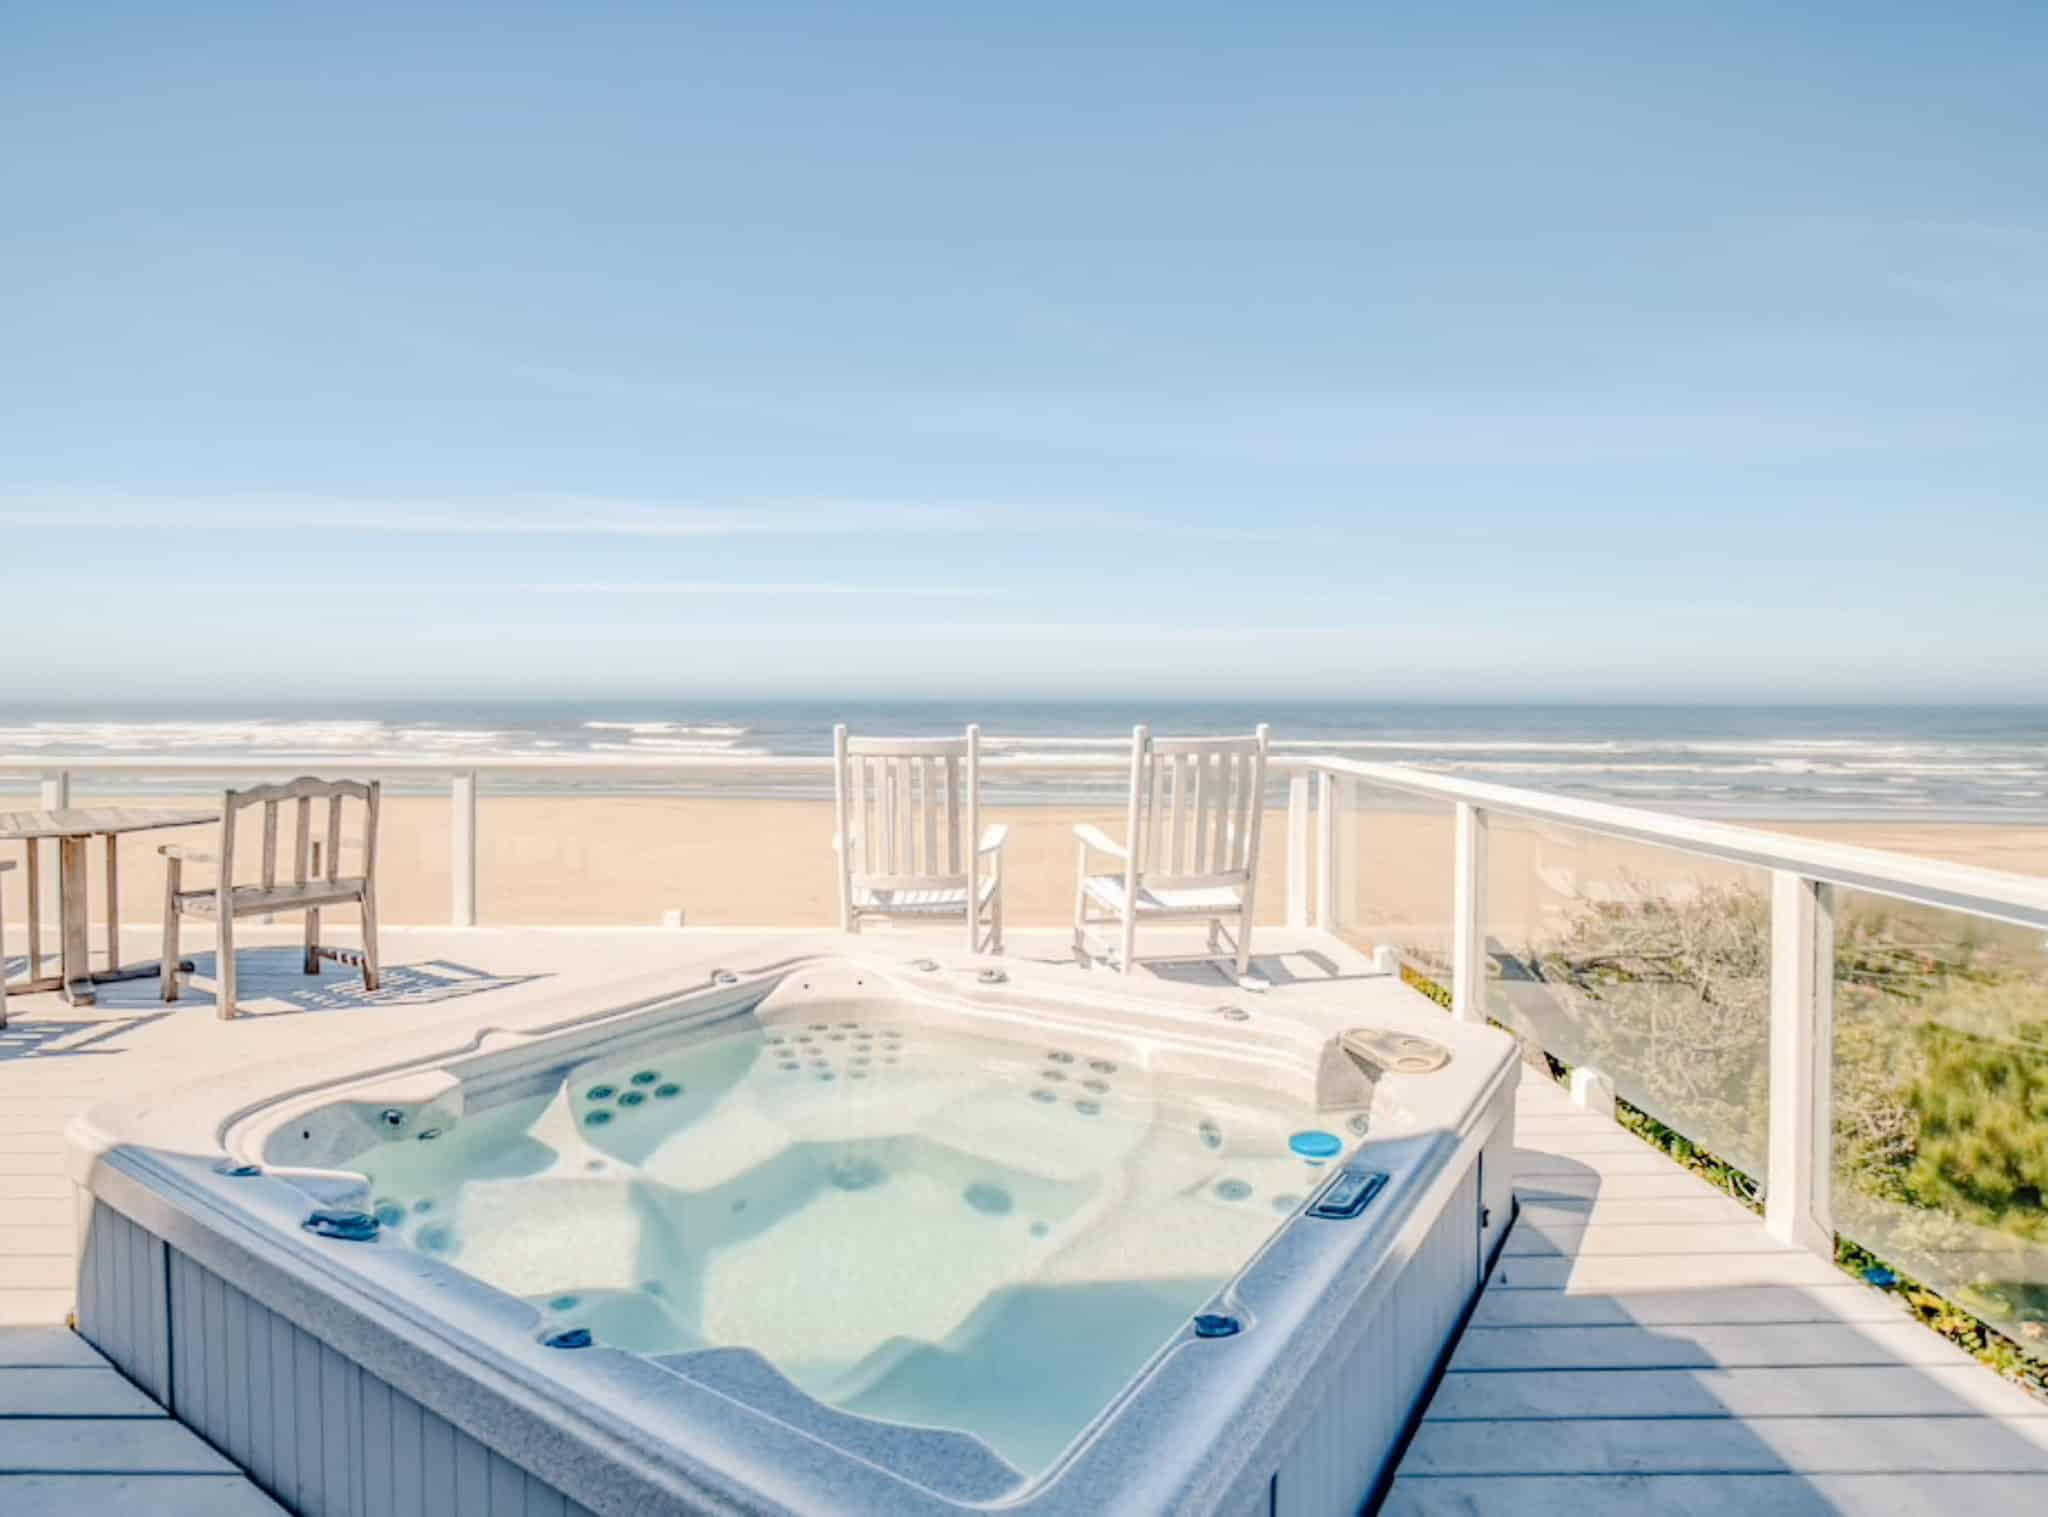 view of a hot tub on a deck near the ocean